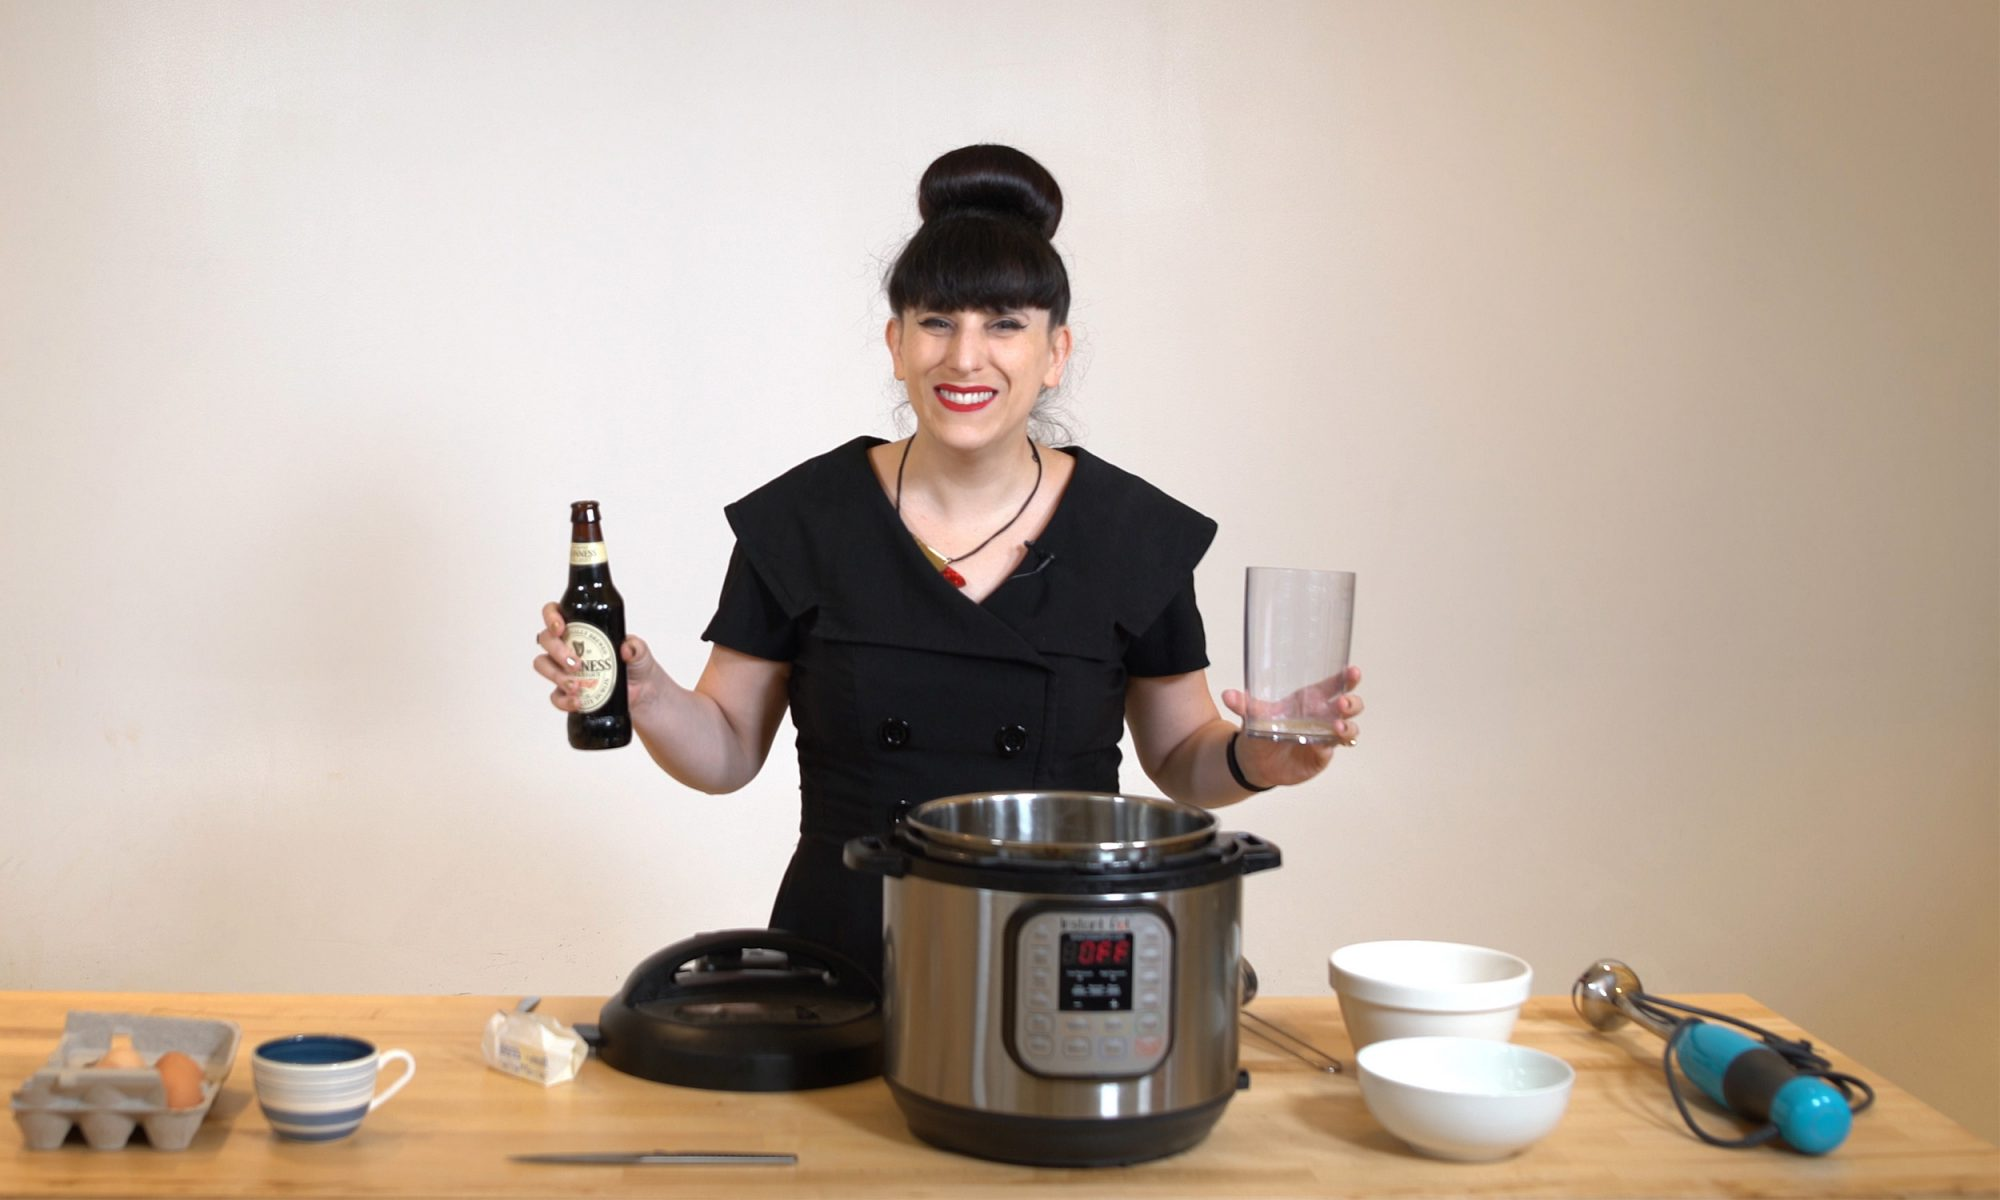 beer and eggs in an Instant Pot